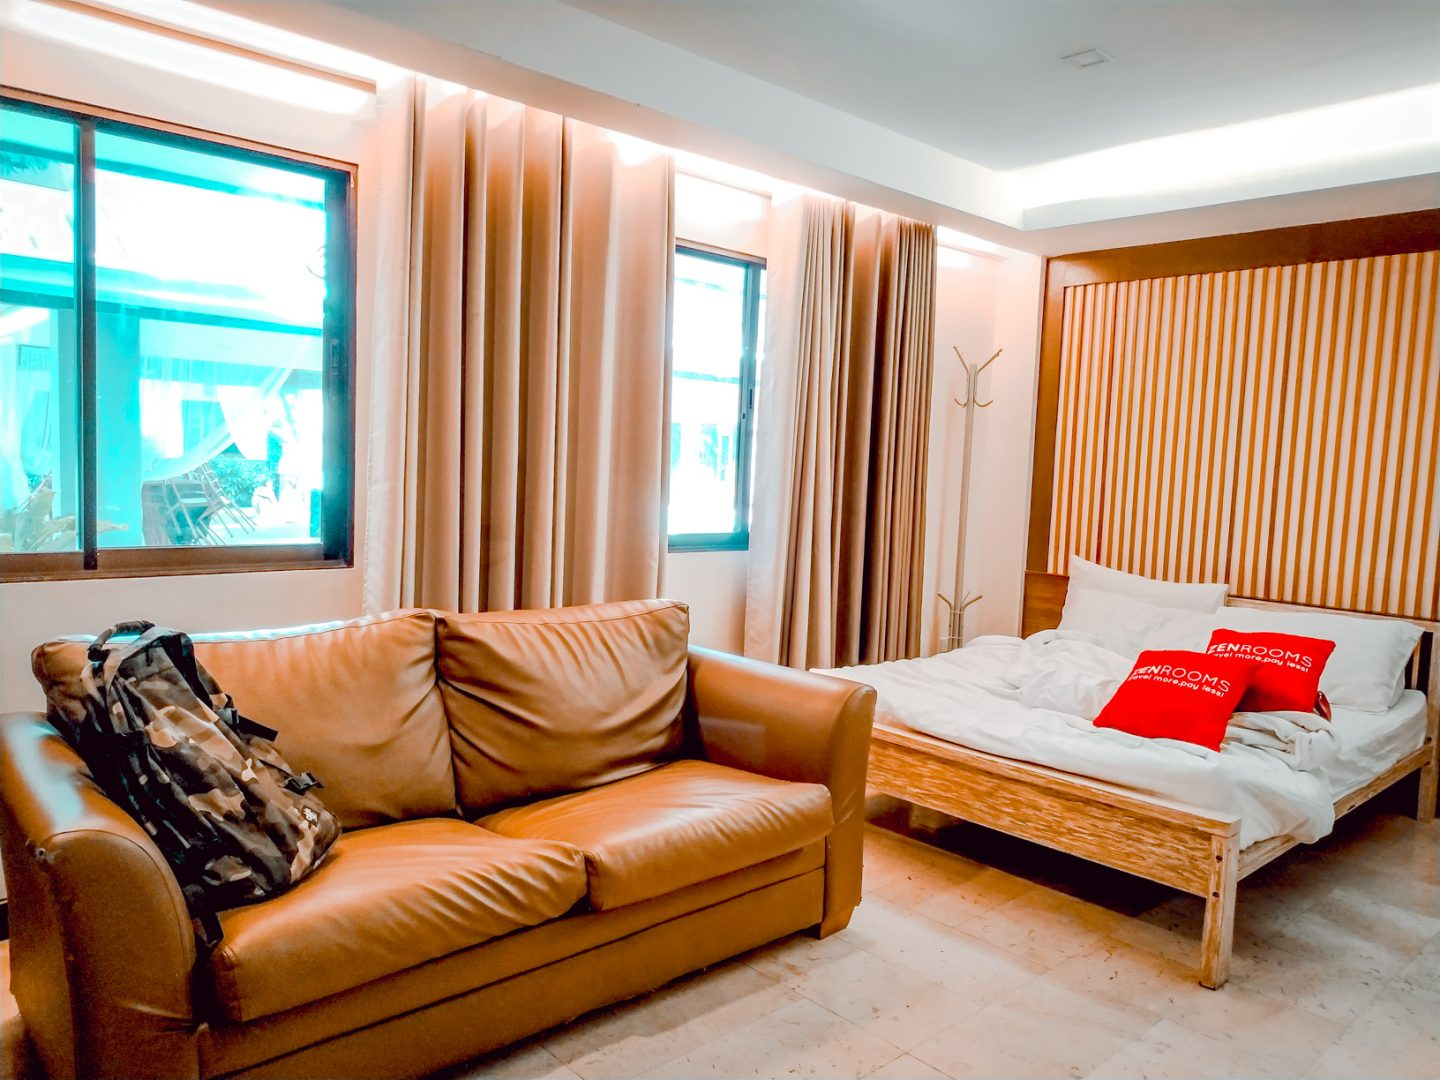 Selah Garden Hotel in Pasay: Staycation via Zen Rooms